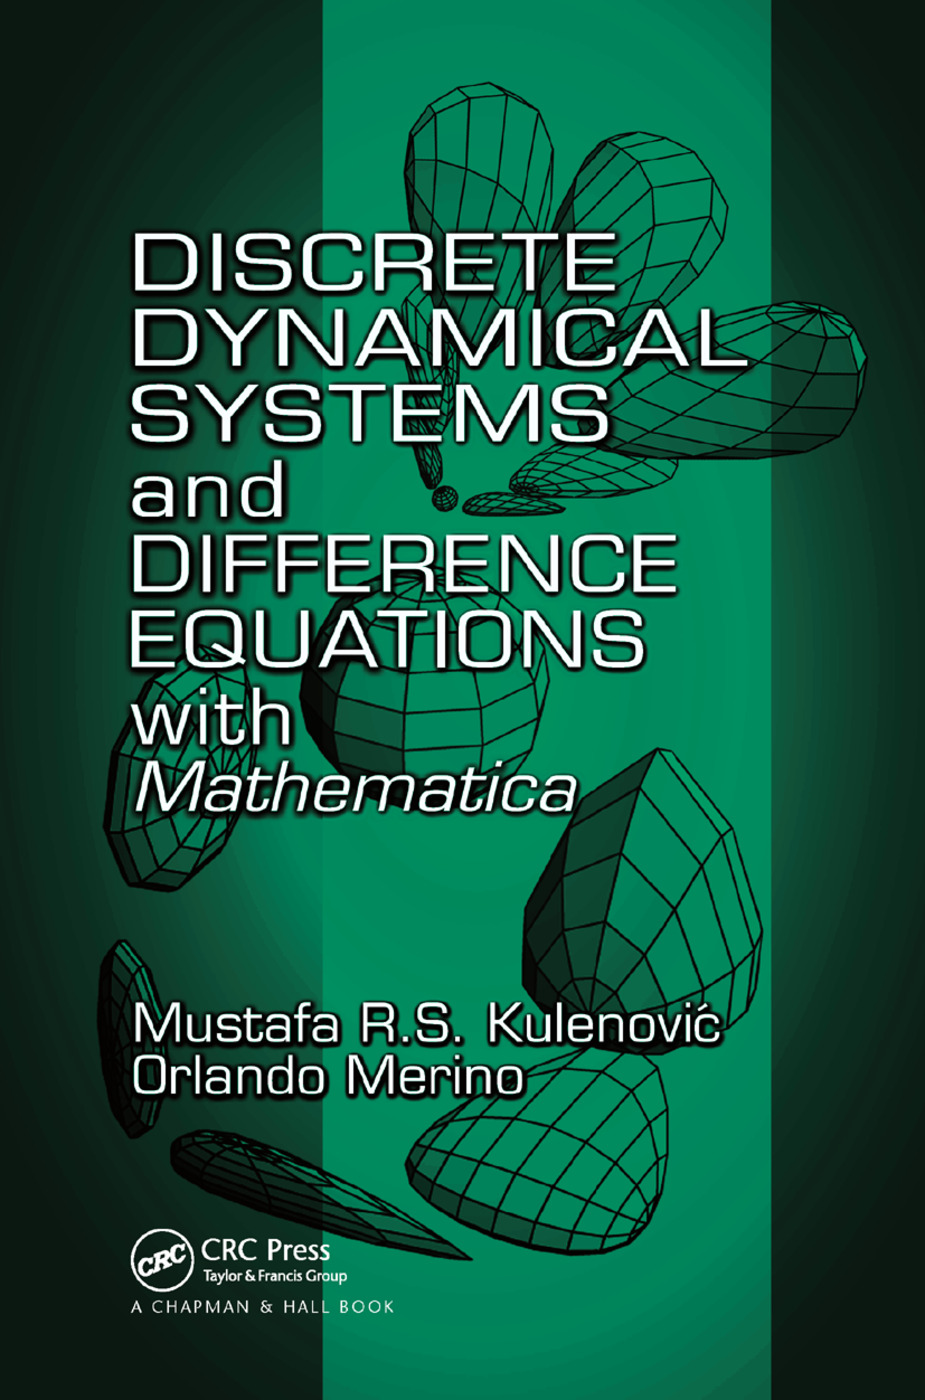 Discrete Dynamical Systems and Difference Equations with Mathematica: 1st Edition (Paperback) book cover